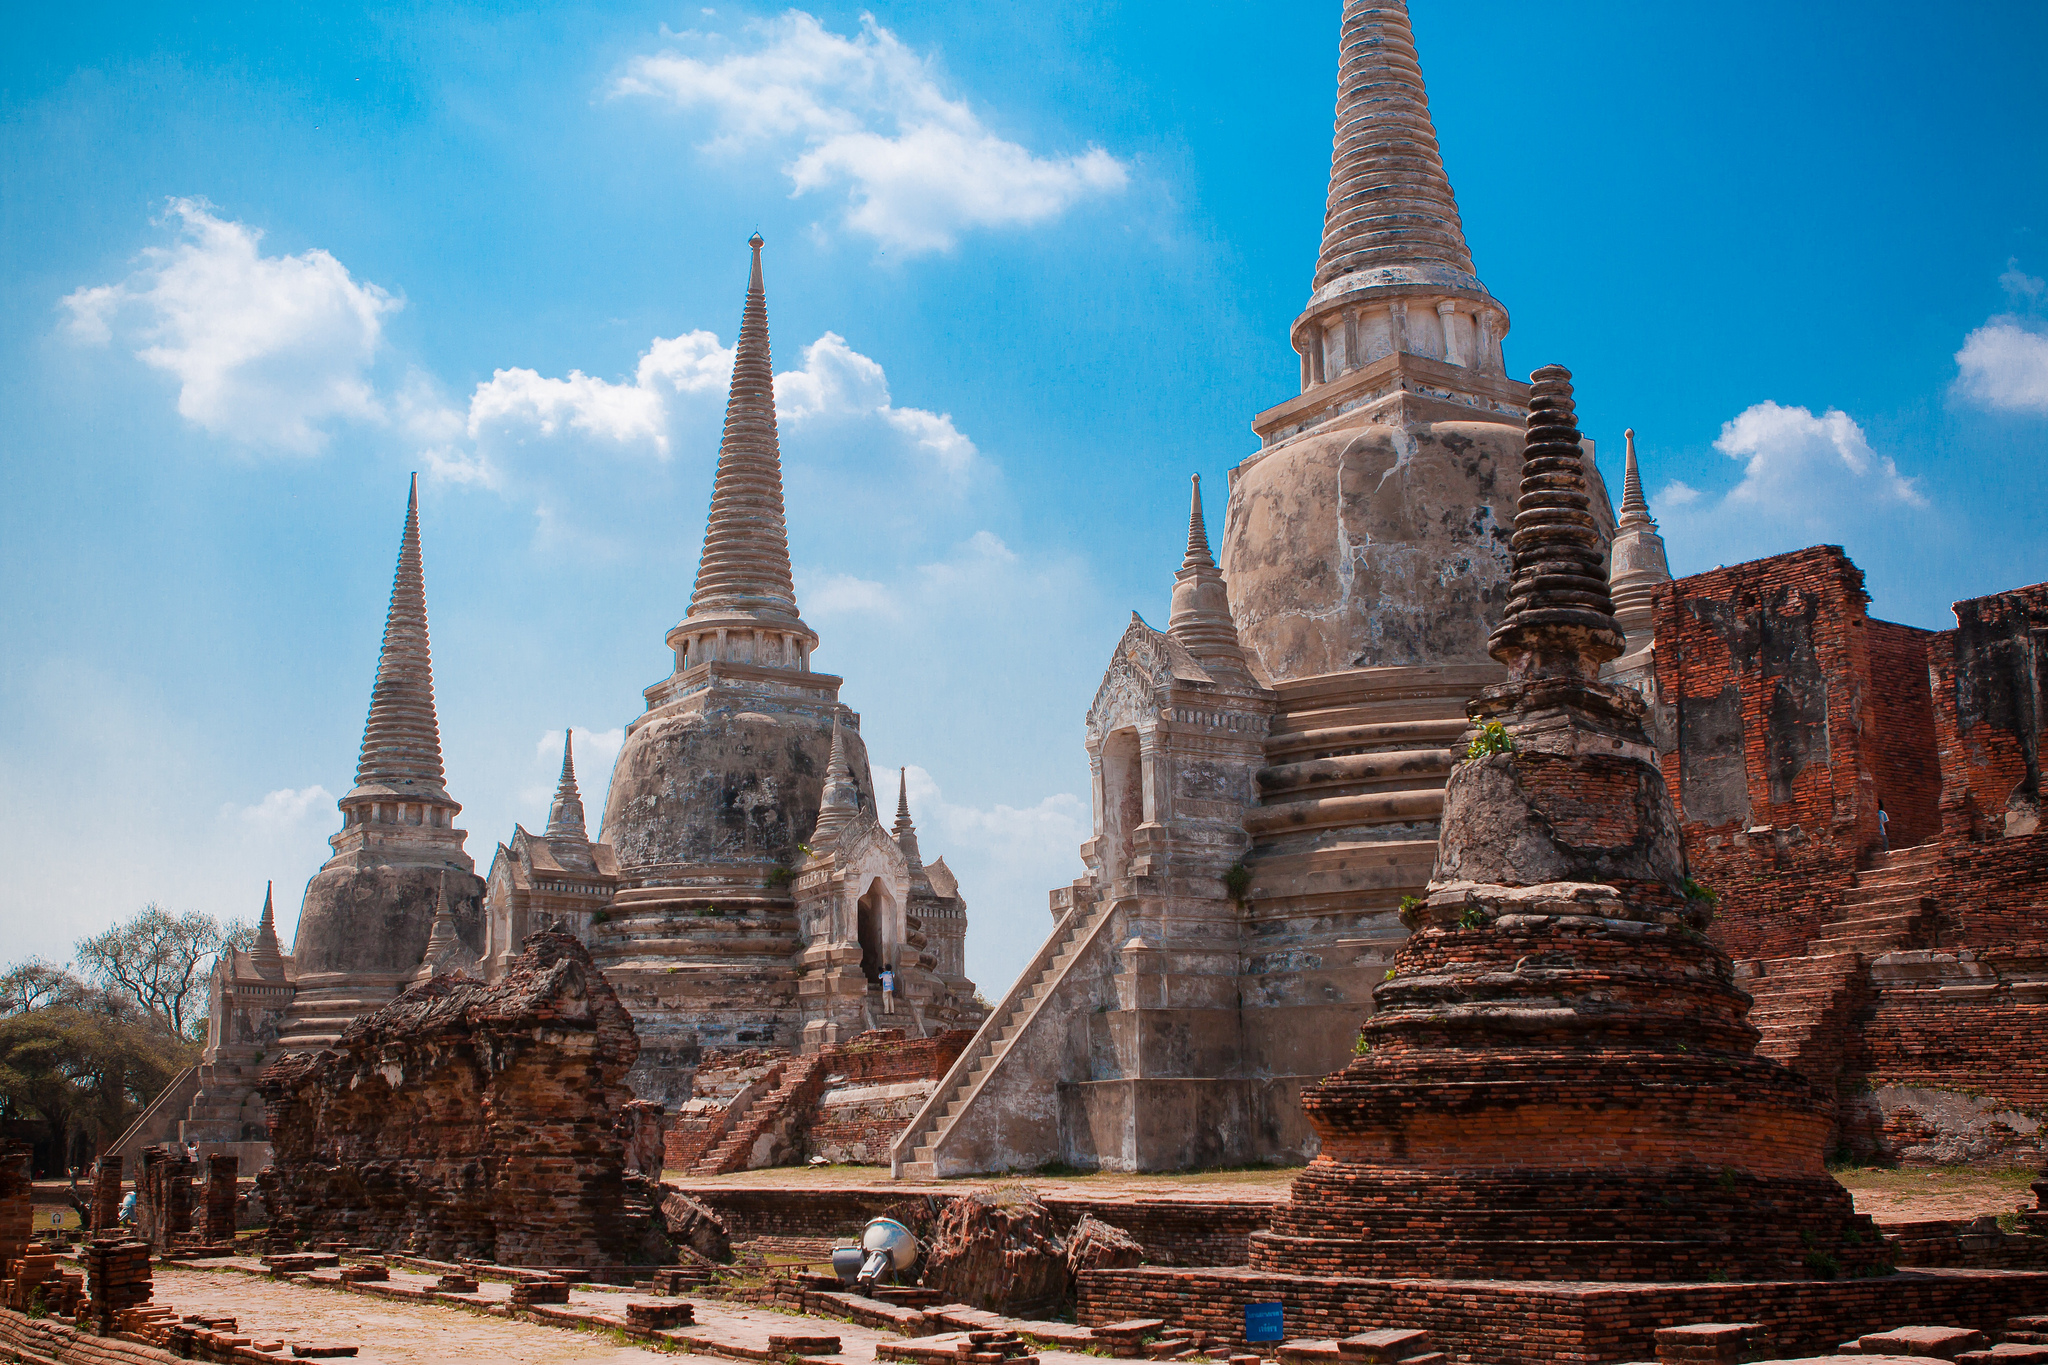 Wat Phra Si Sanphet - Temple in Ayutthaya Historical Park - Thousand Wonders